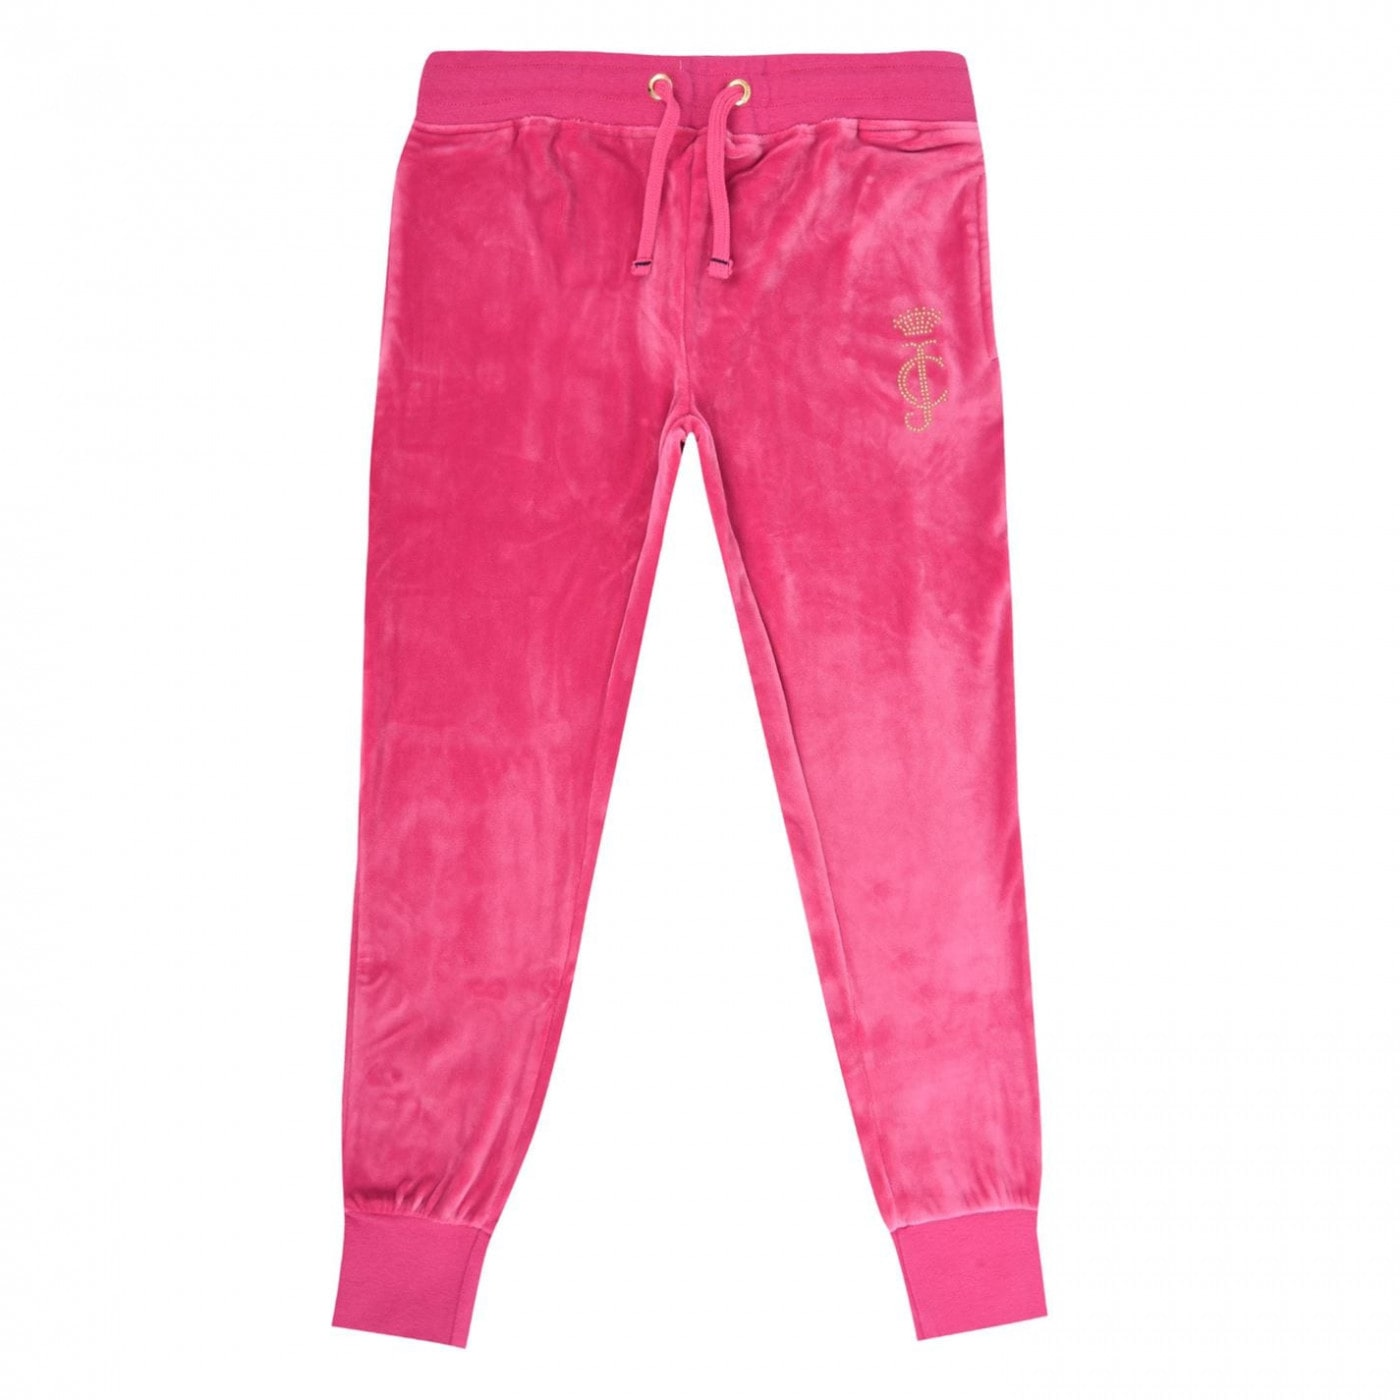 Juicy Couture Jogging Bottoms